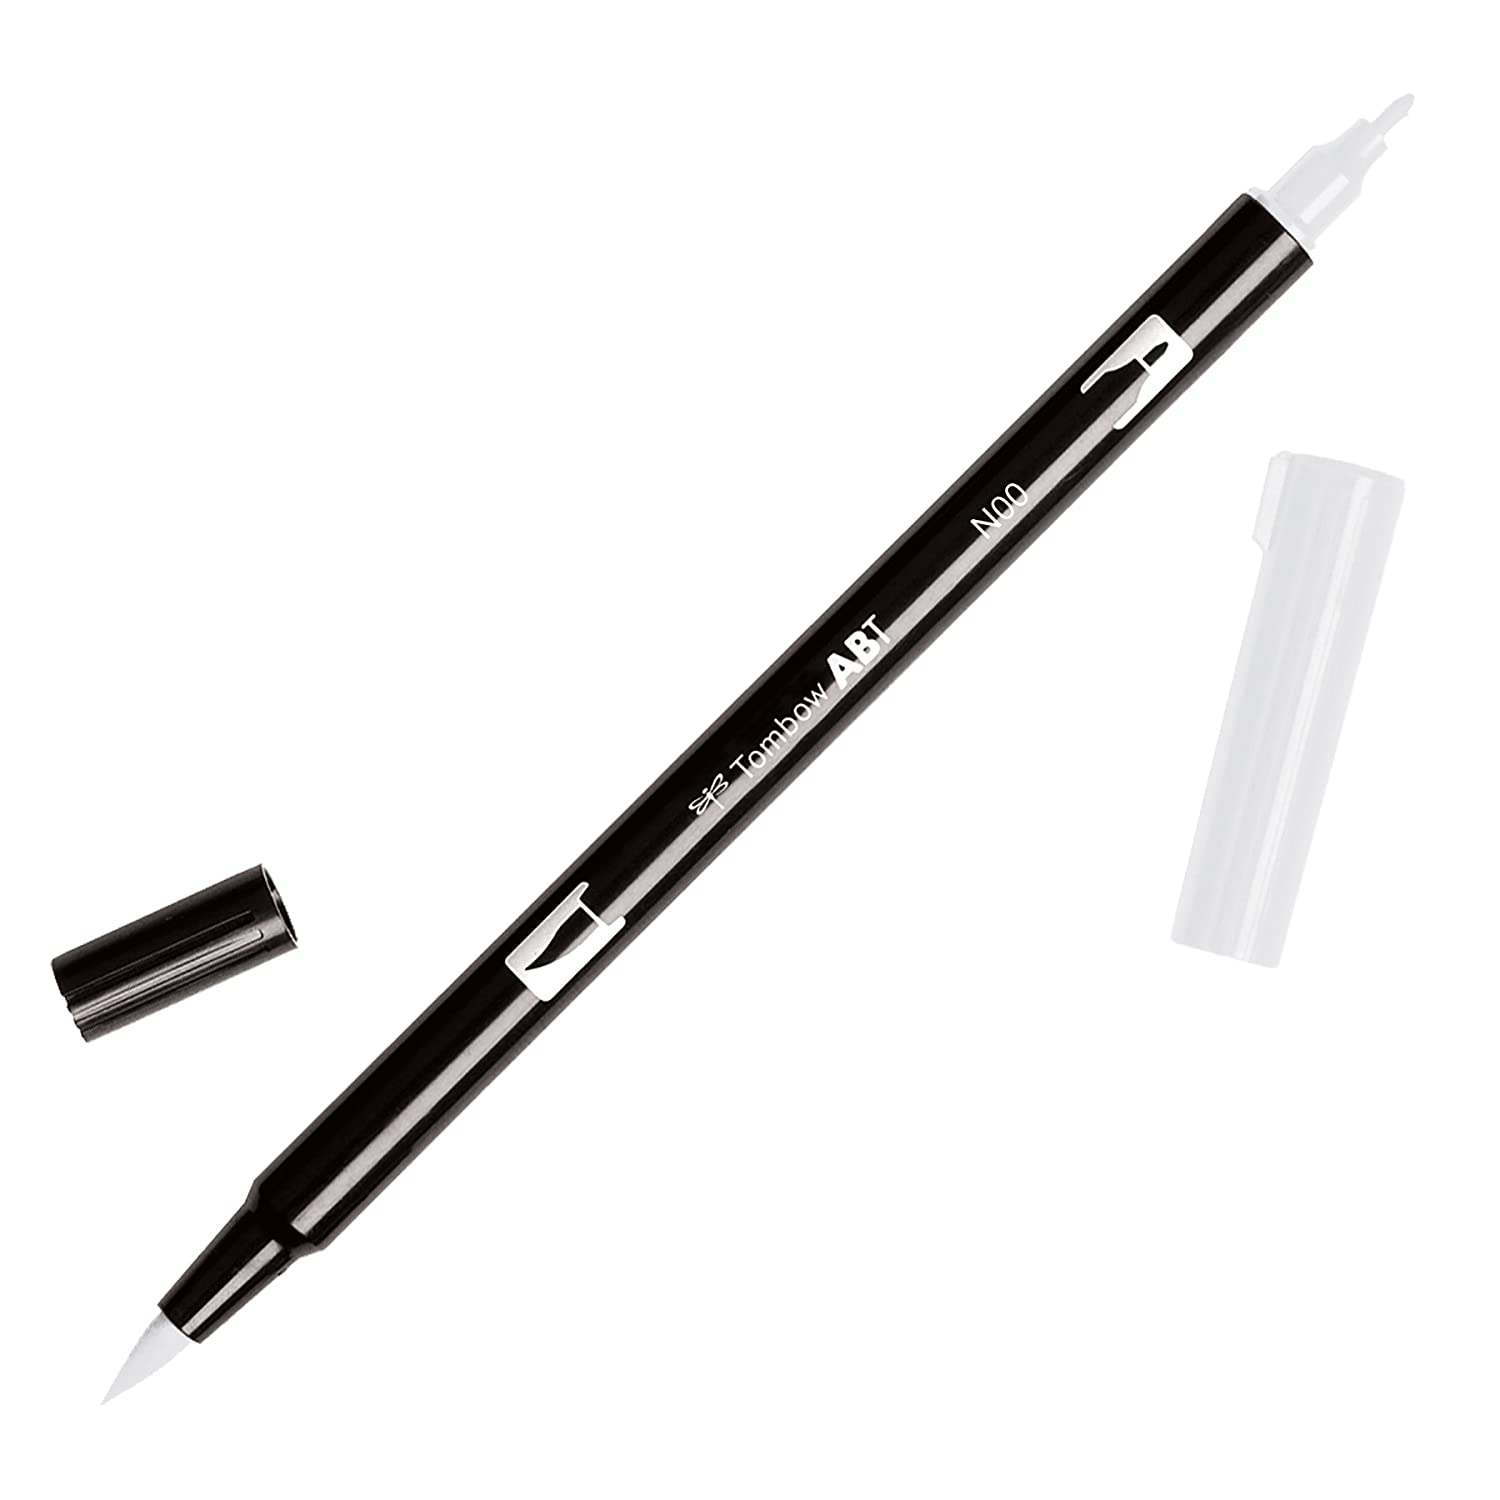 Tombow Dual Brush Pen Art Marker, N00 - Colorless Blender, 1-Pack